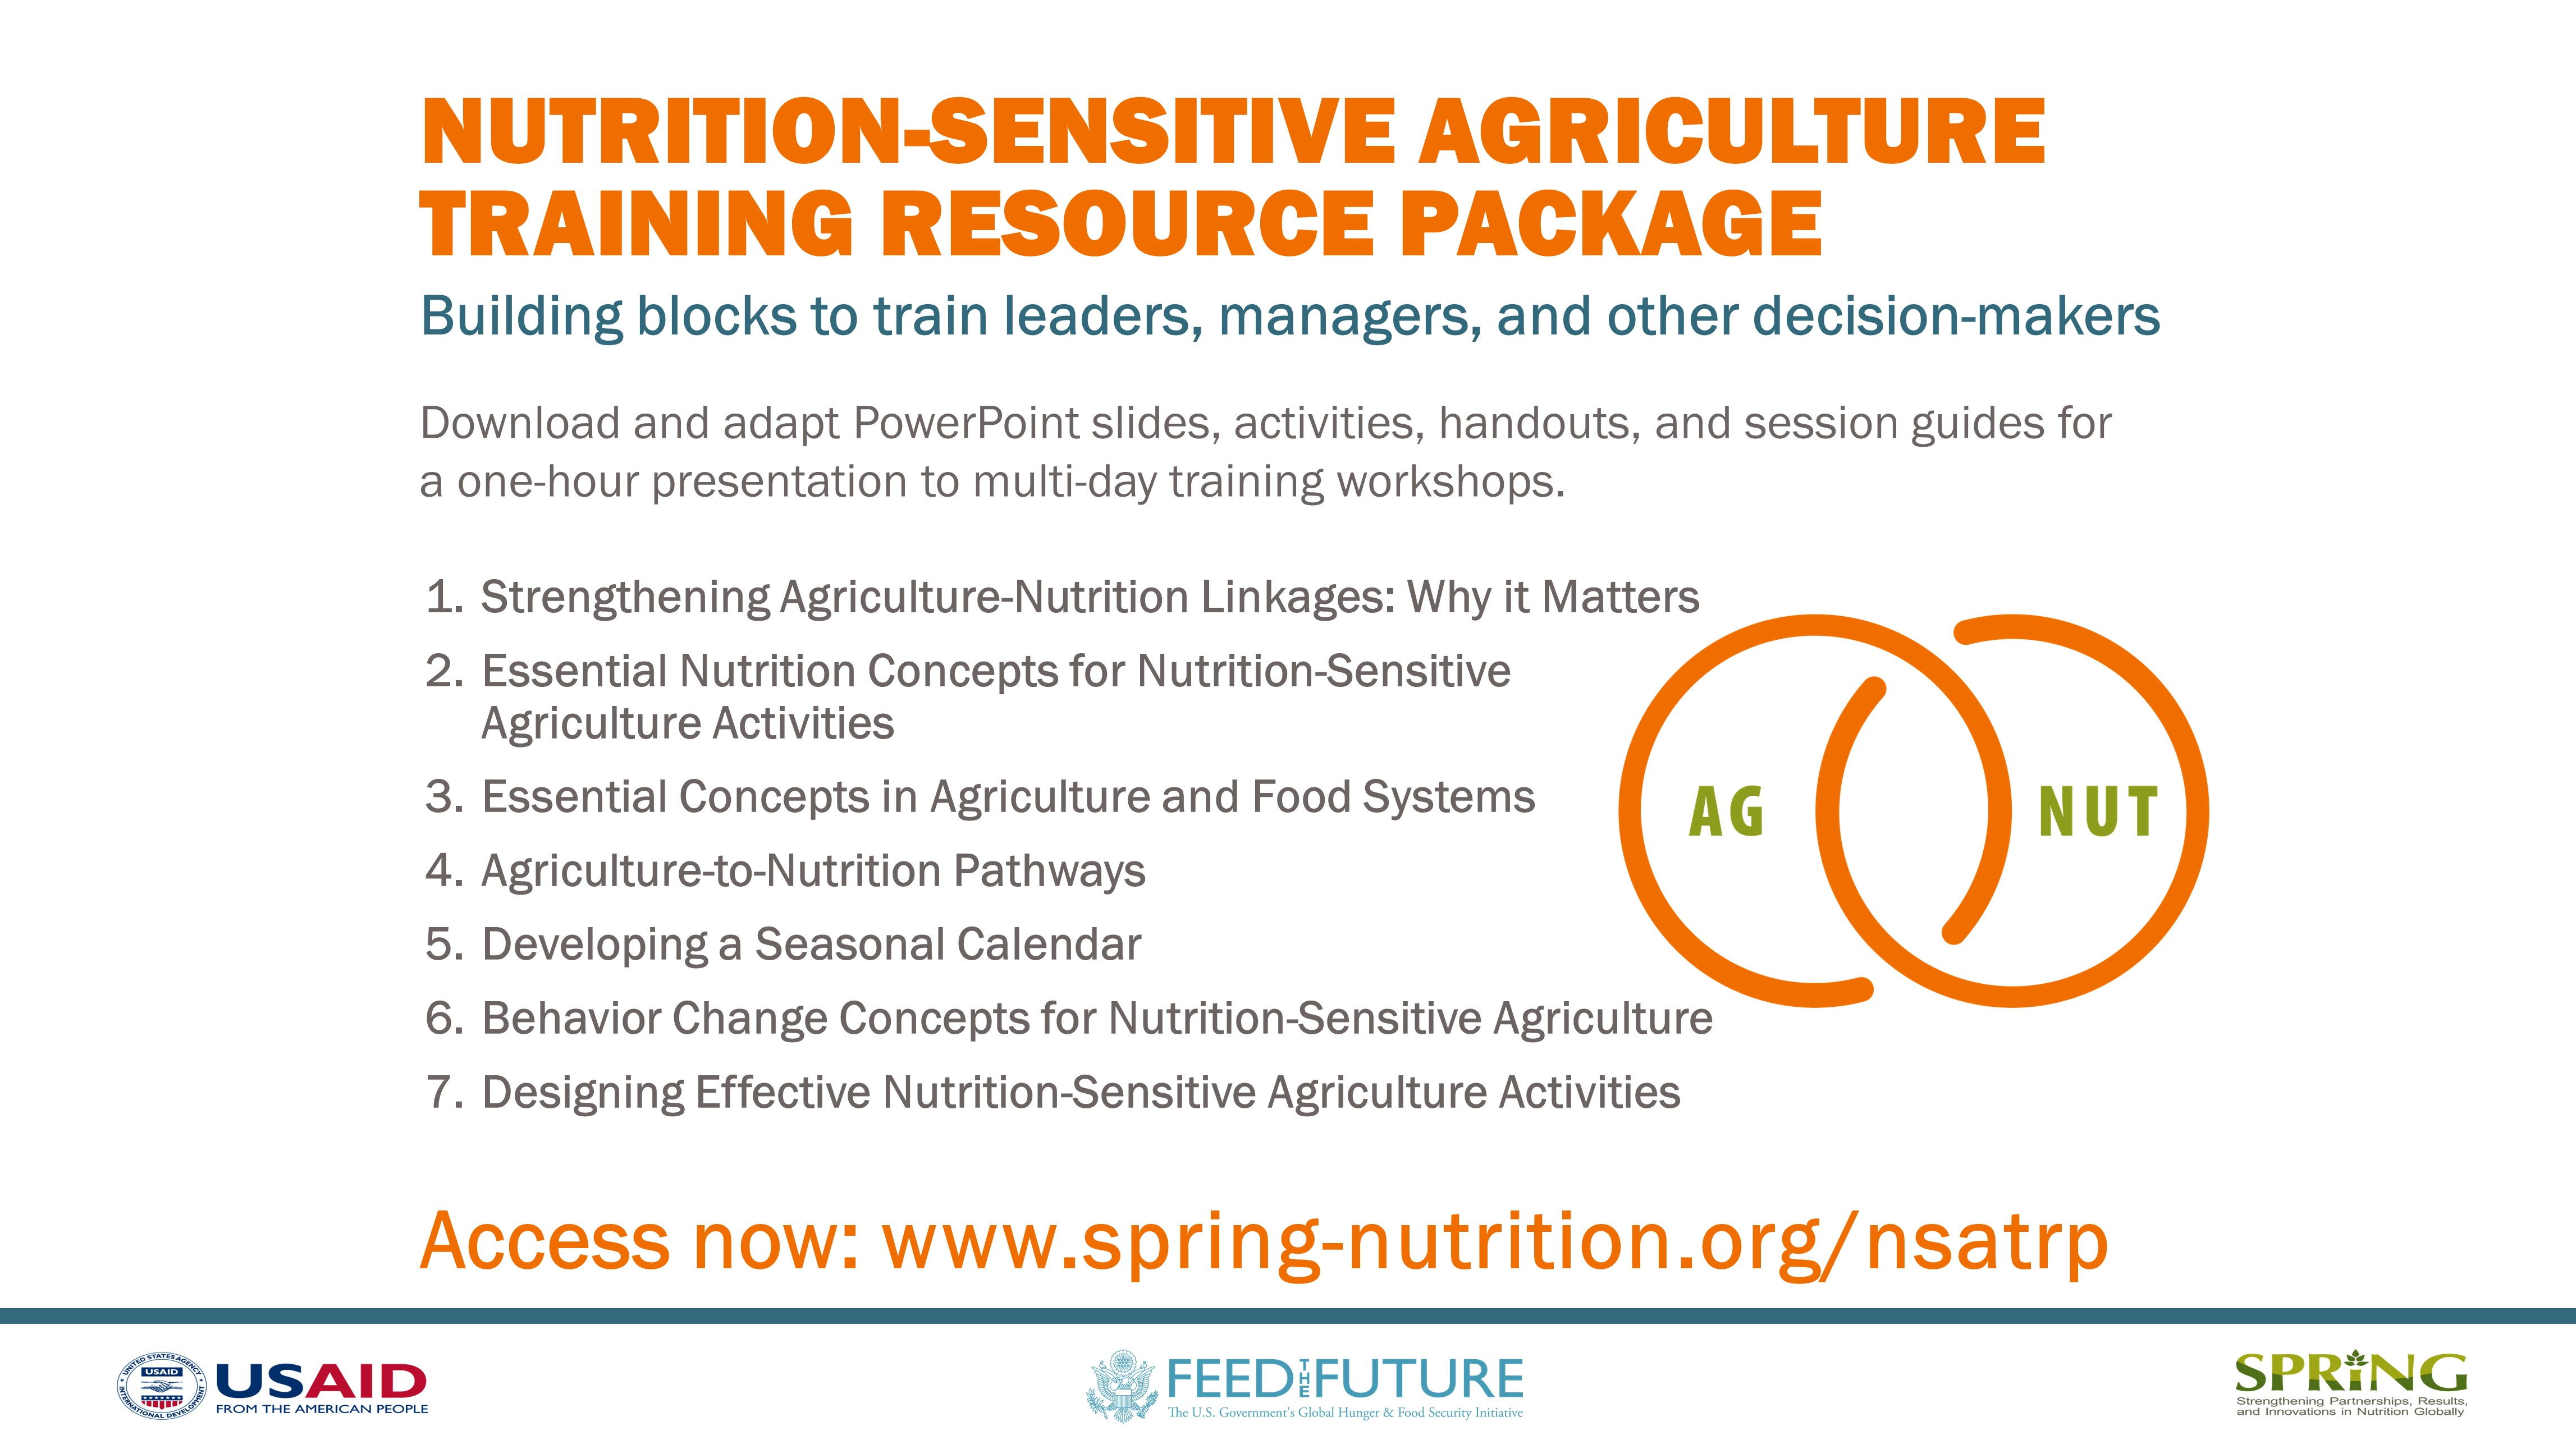 Nutrition-Sensitive Agriculture Training Resource Package